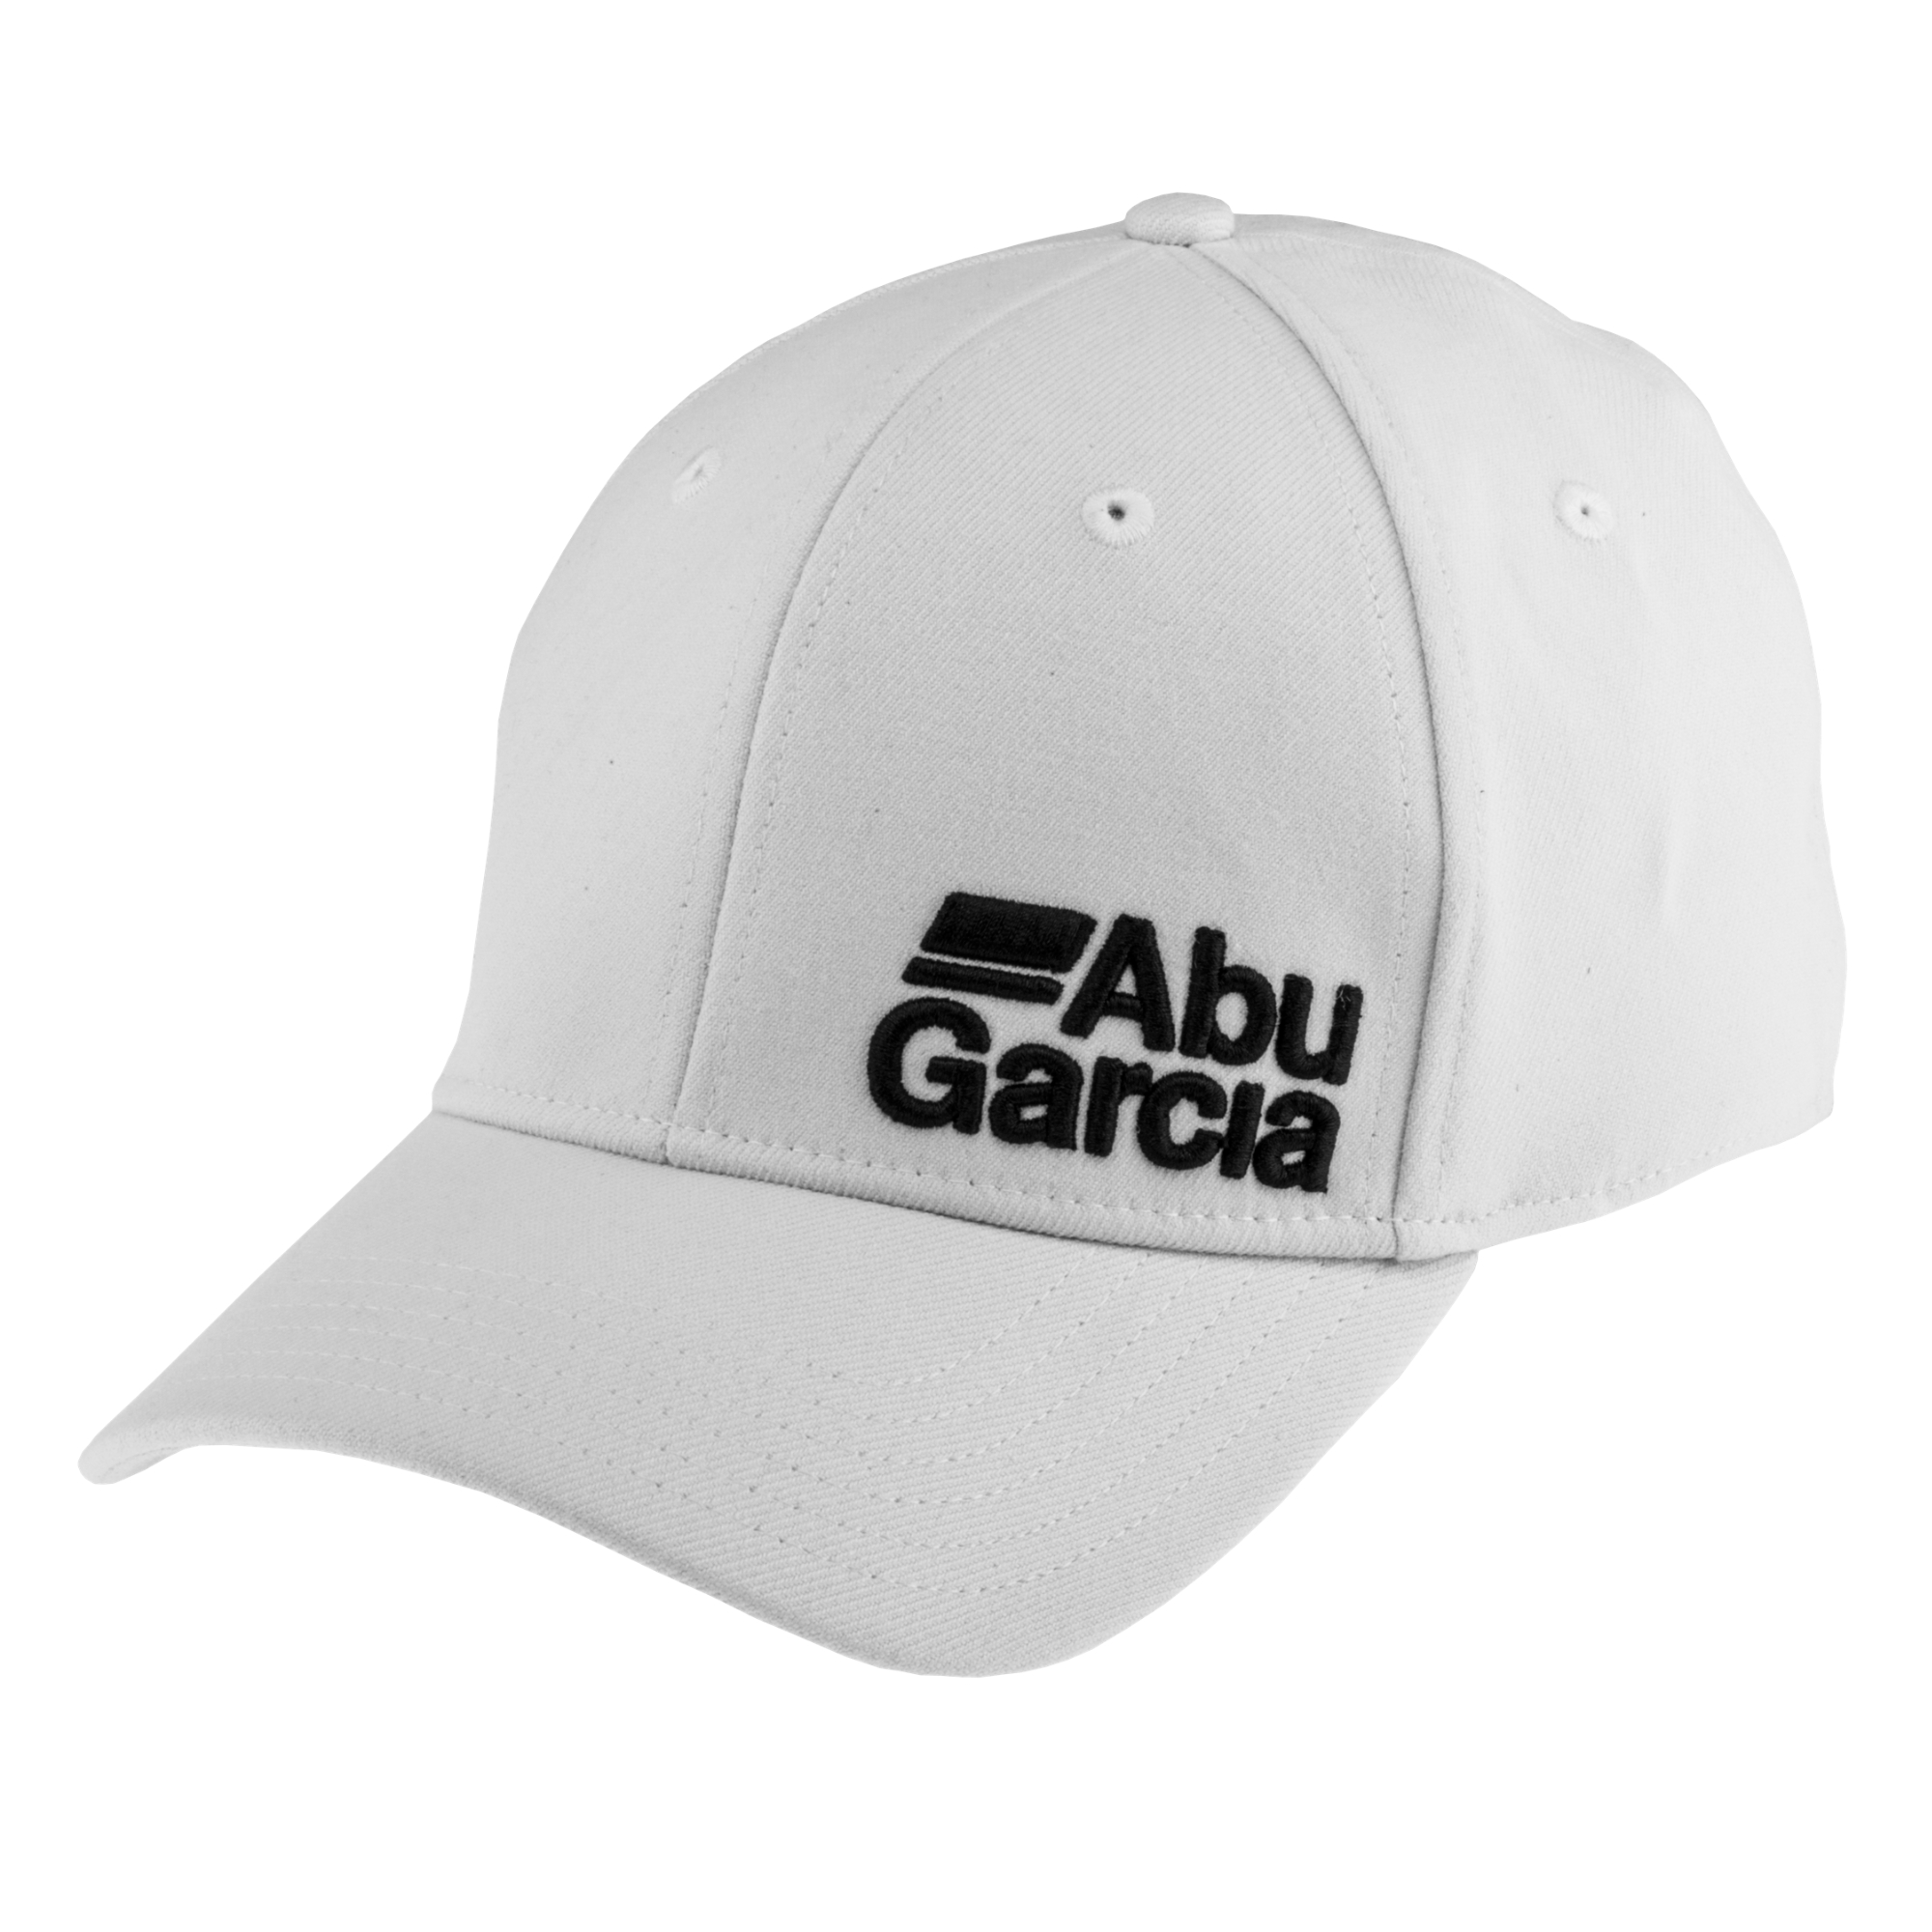 Abu garcia original fitted hat ebay for Fitted fishing hats